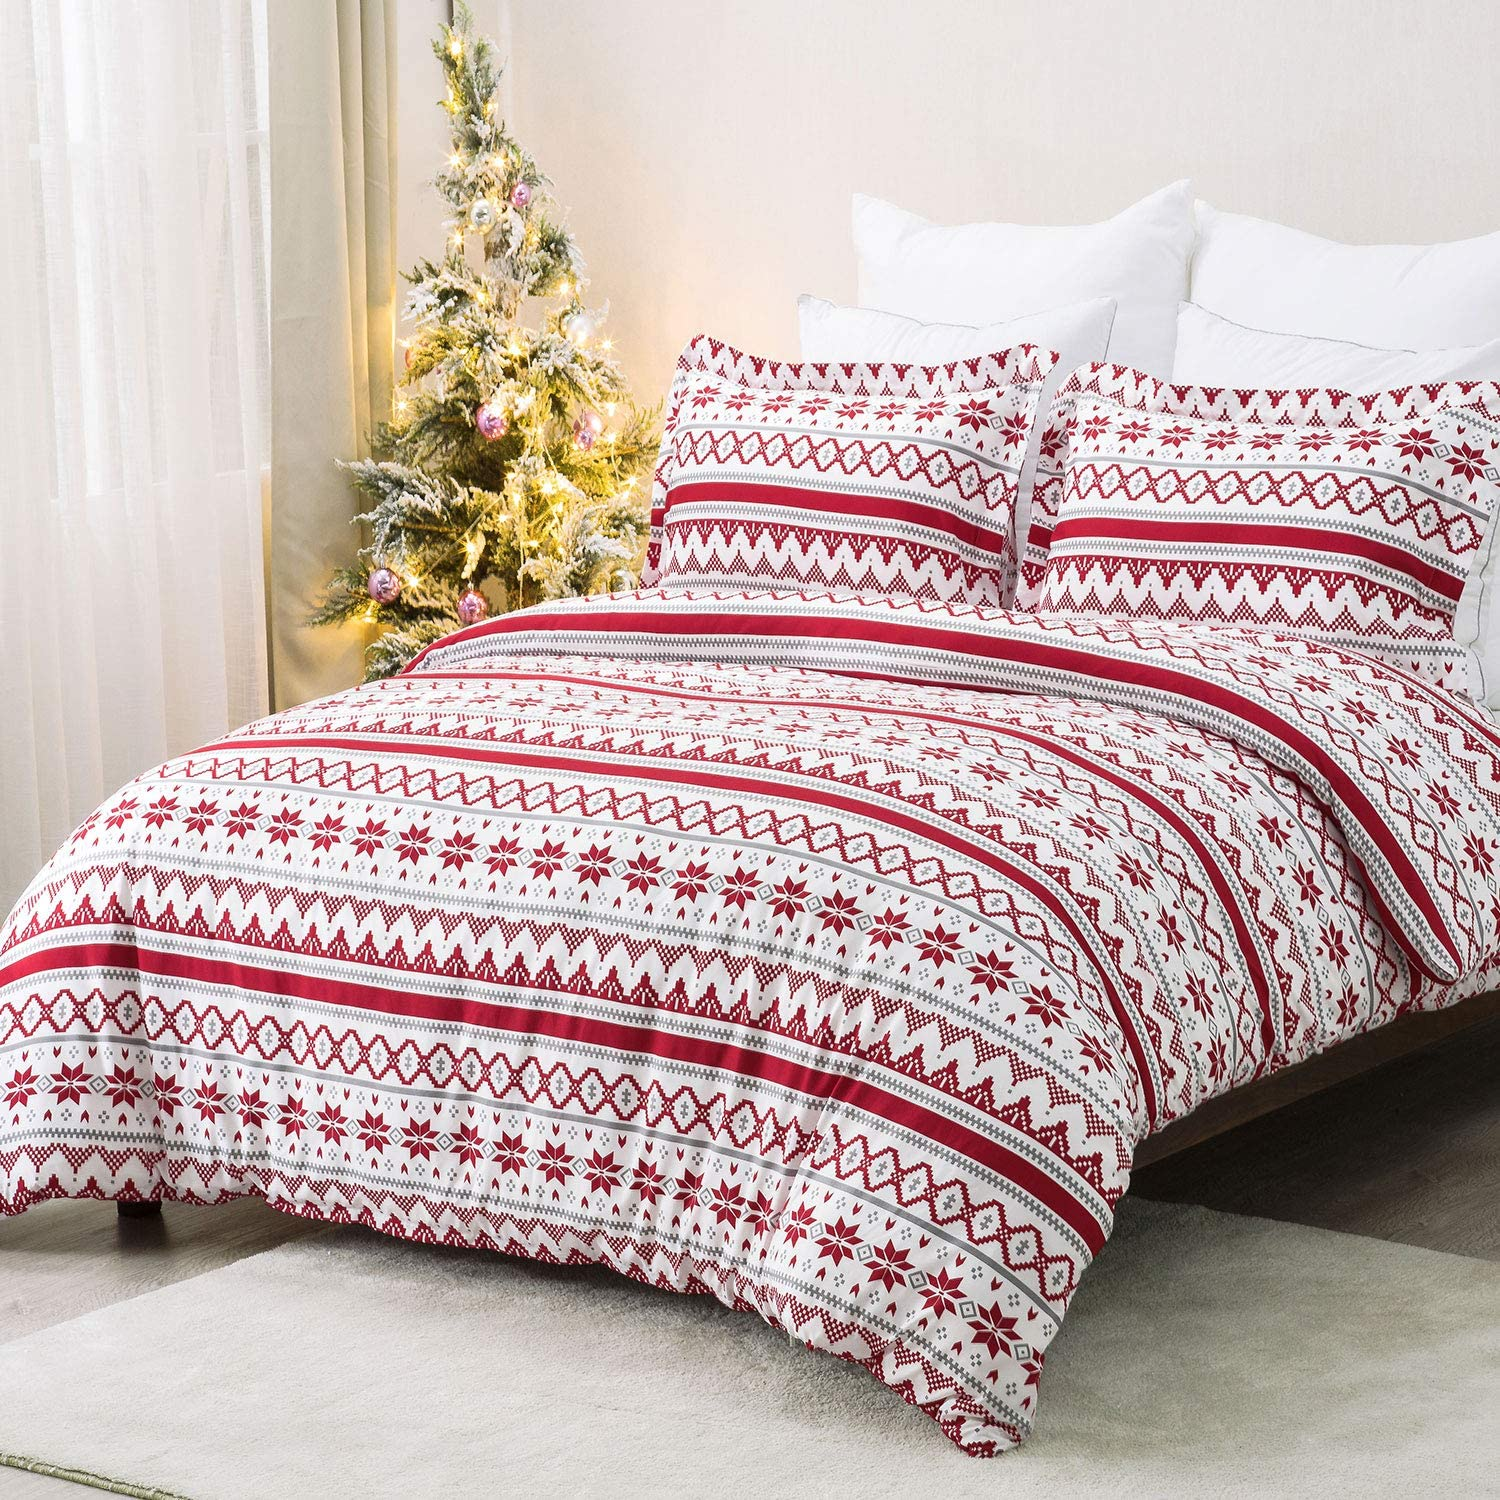 Bedsure Christmas Duvet Cover Set, Full/Queen (90×90 inches) - Reversible Fair Isle Pattern - Soft Microfiber Comforter Cover, 3 Pieces Bedding with 1 Duvet Cover (No Comforter Insert), 2 Pillow Shams